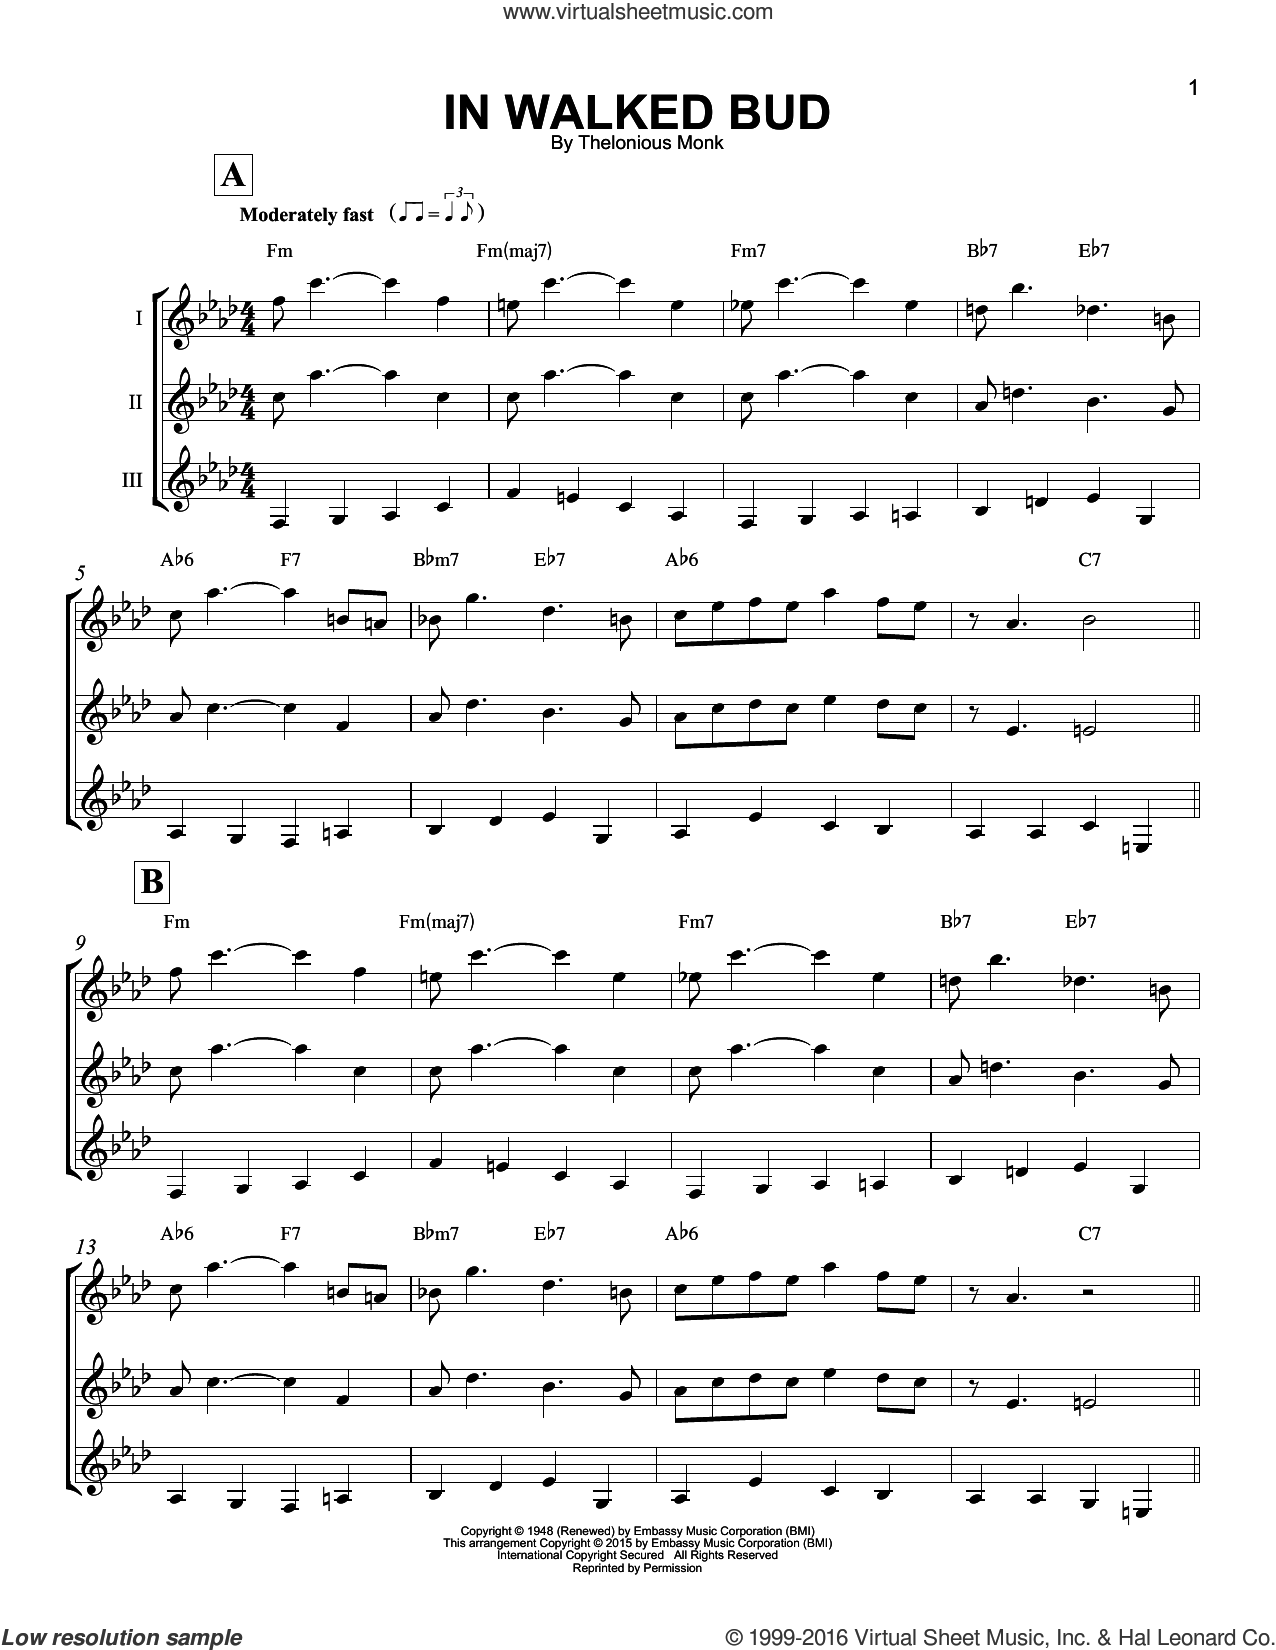 In Walked Bud sheet music for guitar ensemble by Thelonious Monk, intermediate skill level